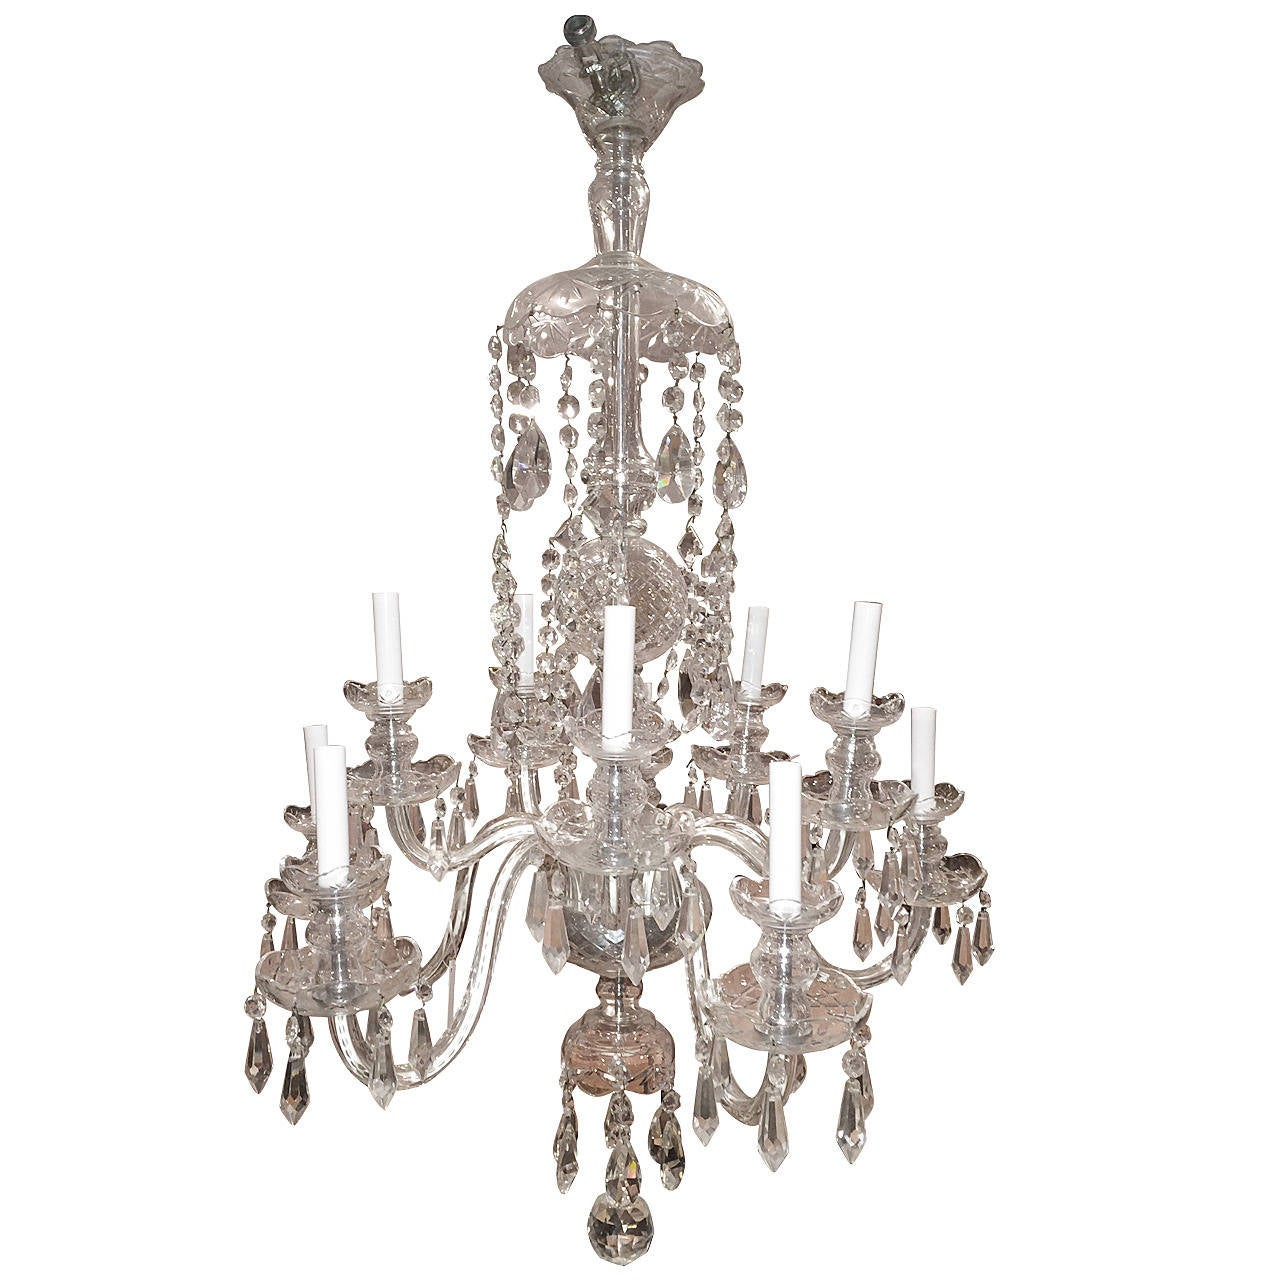 Elegant ten arm crystal chandelier in the style of waterford at 1stdibs elegant ten arm crystal chandelier in the style of waterford for sale arubaitofo Choice Image